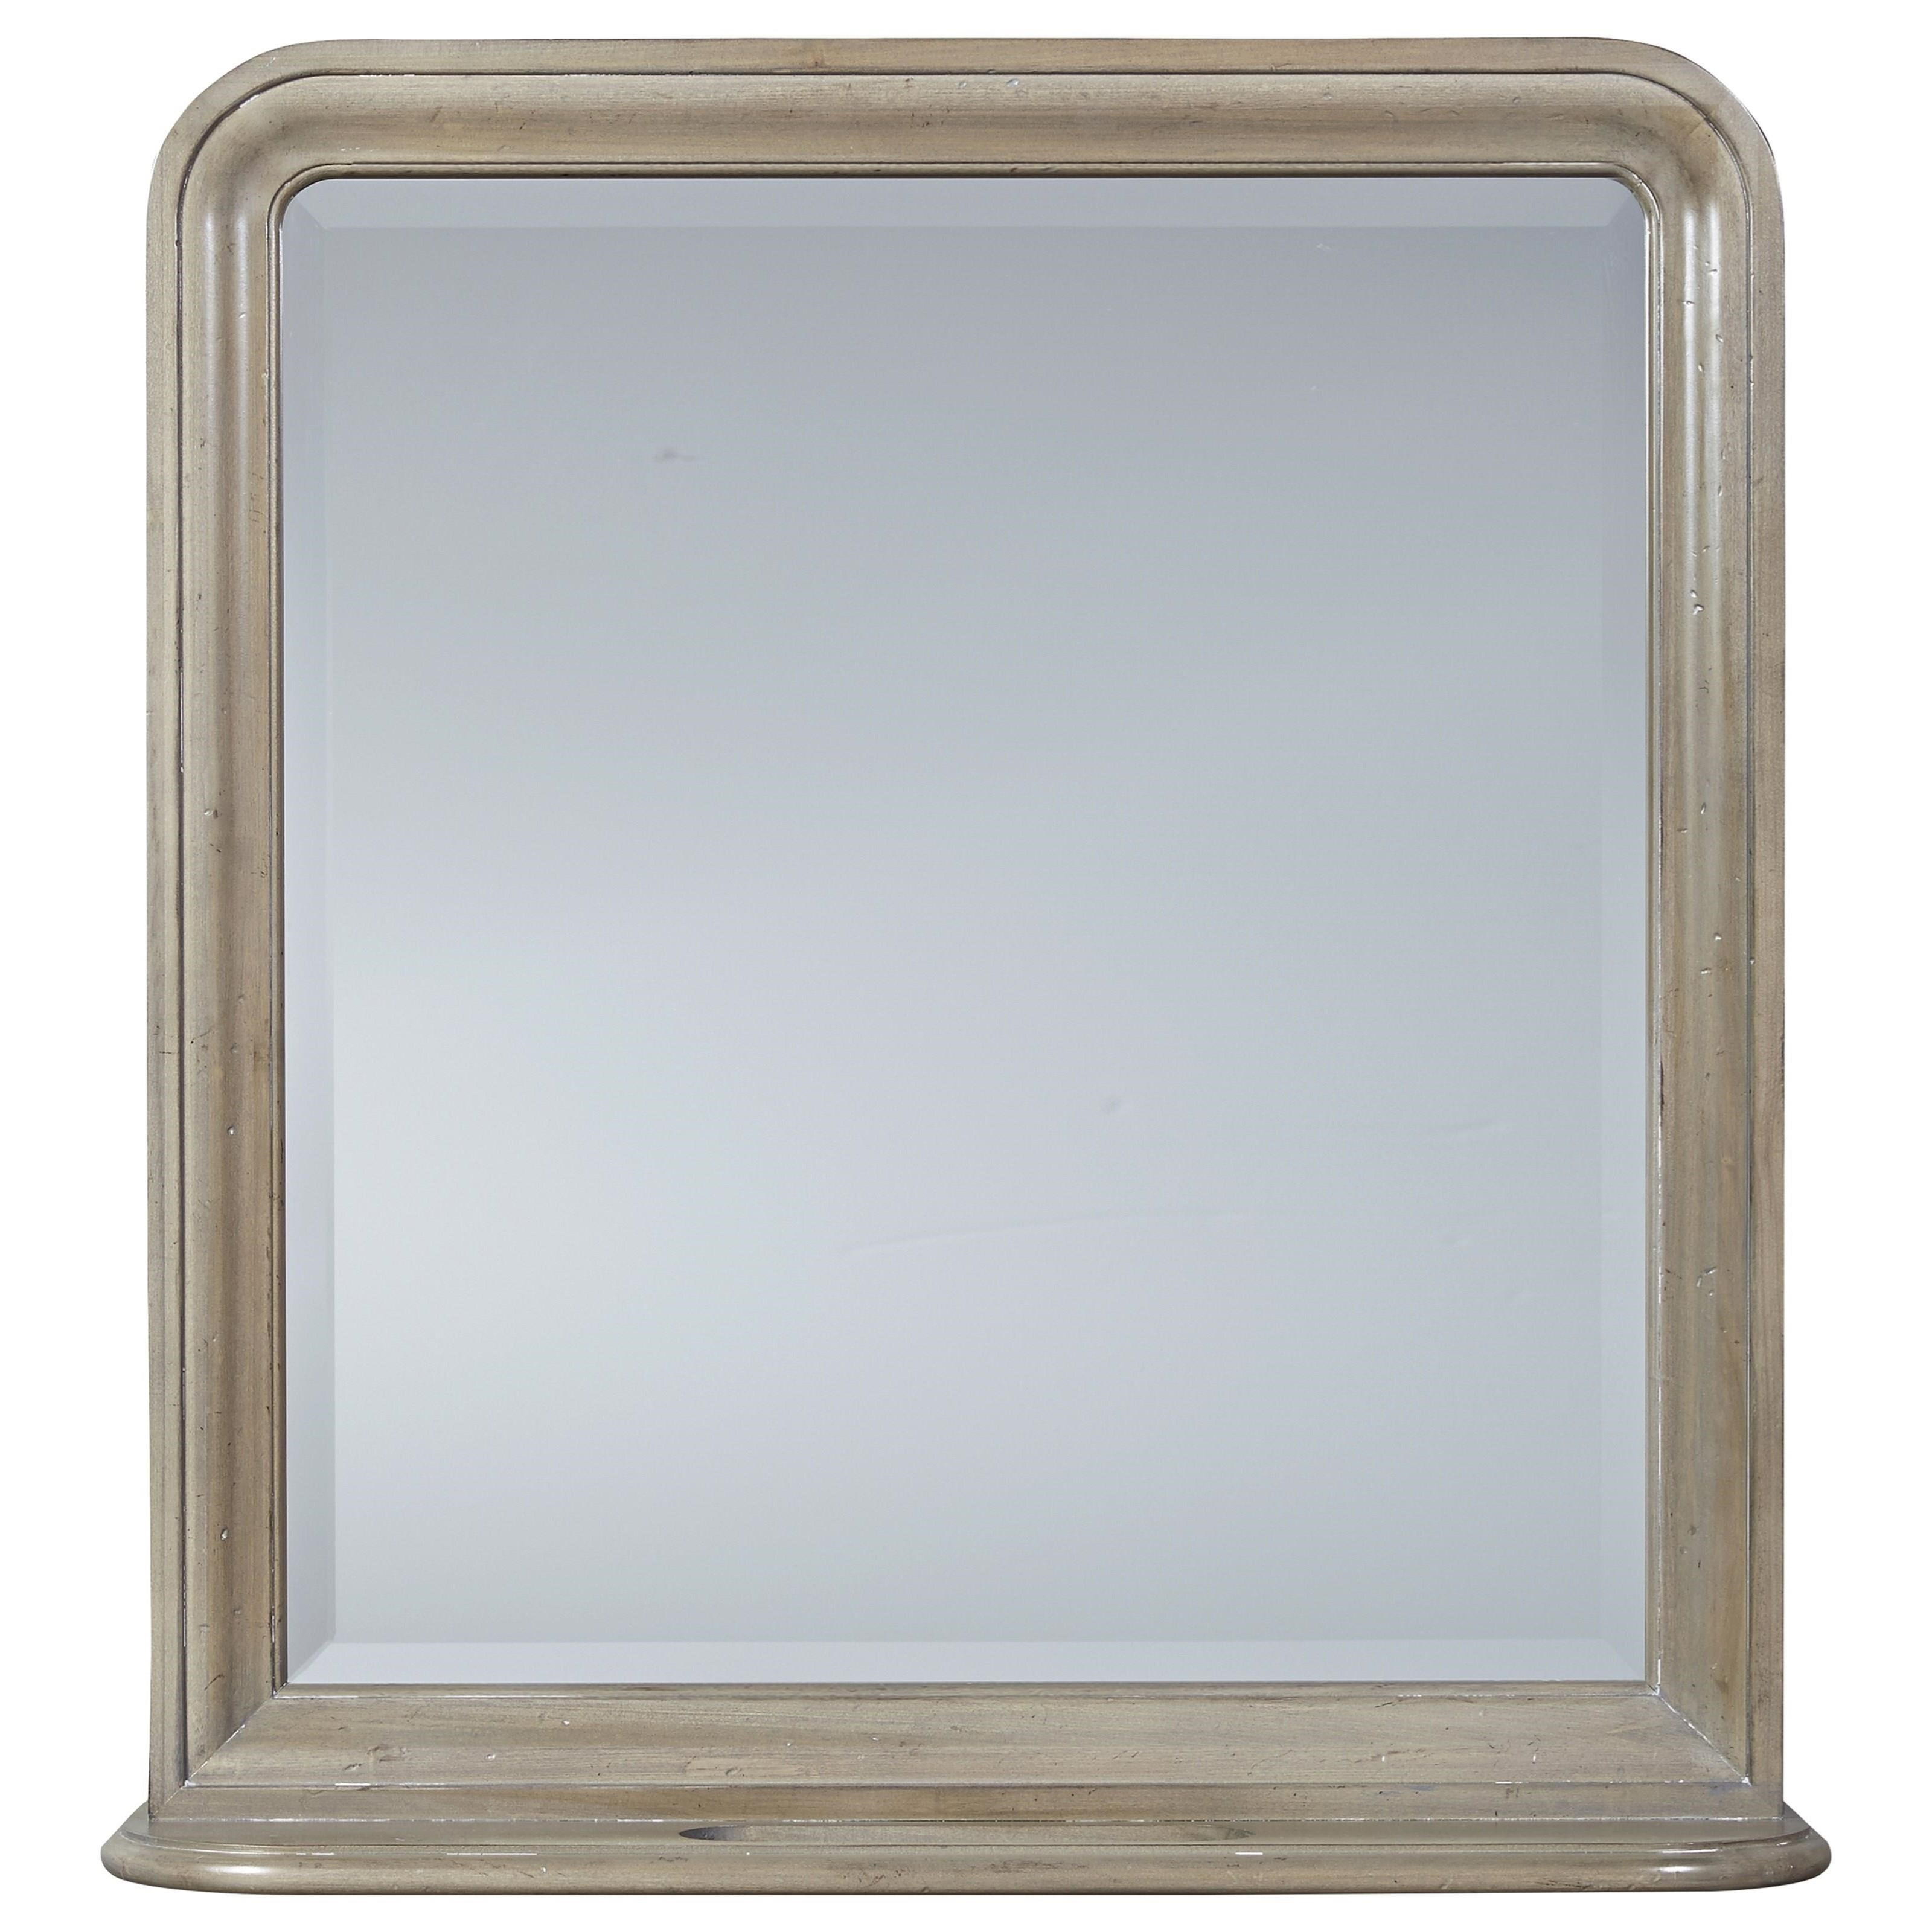 Reprise Storage Mirror by Universal at Baer's Furniture